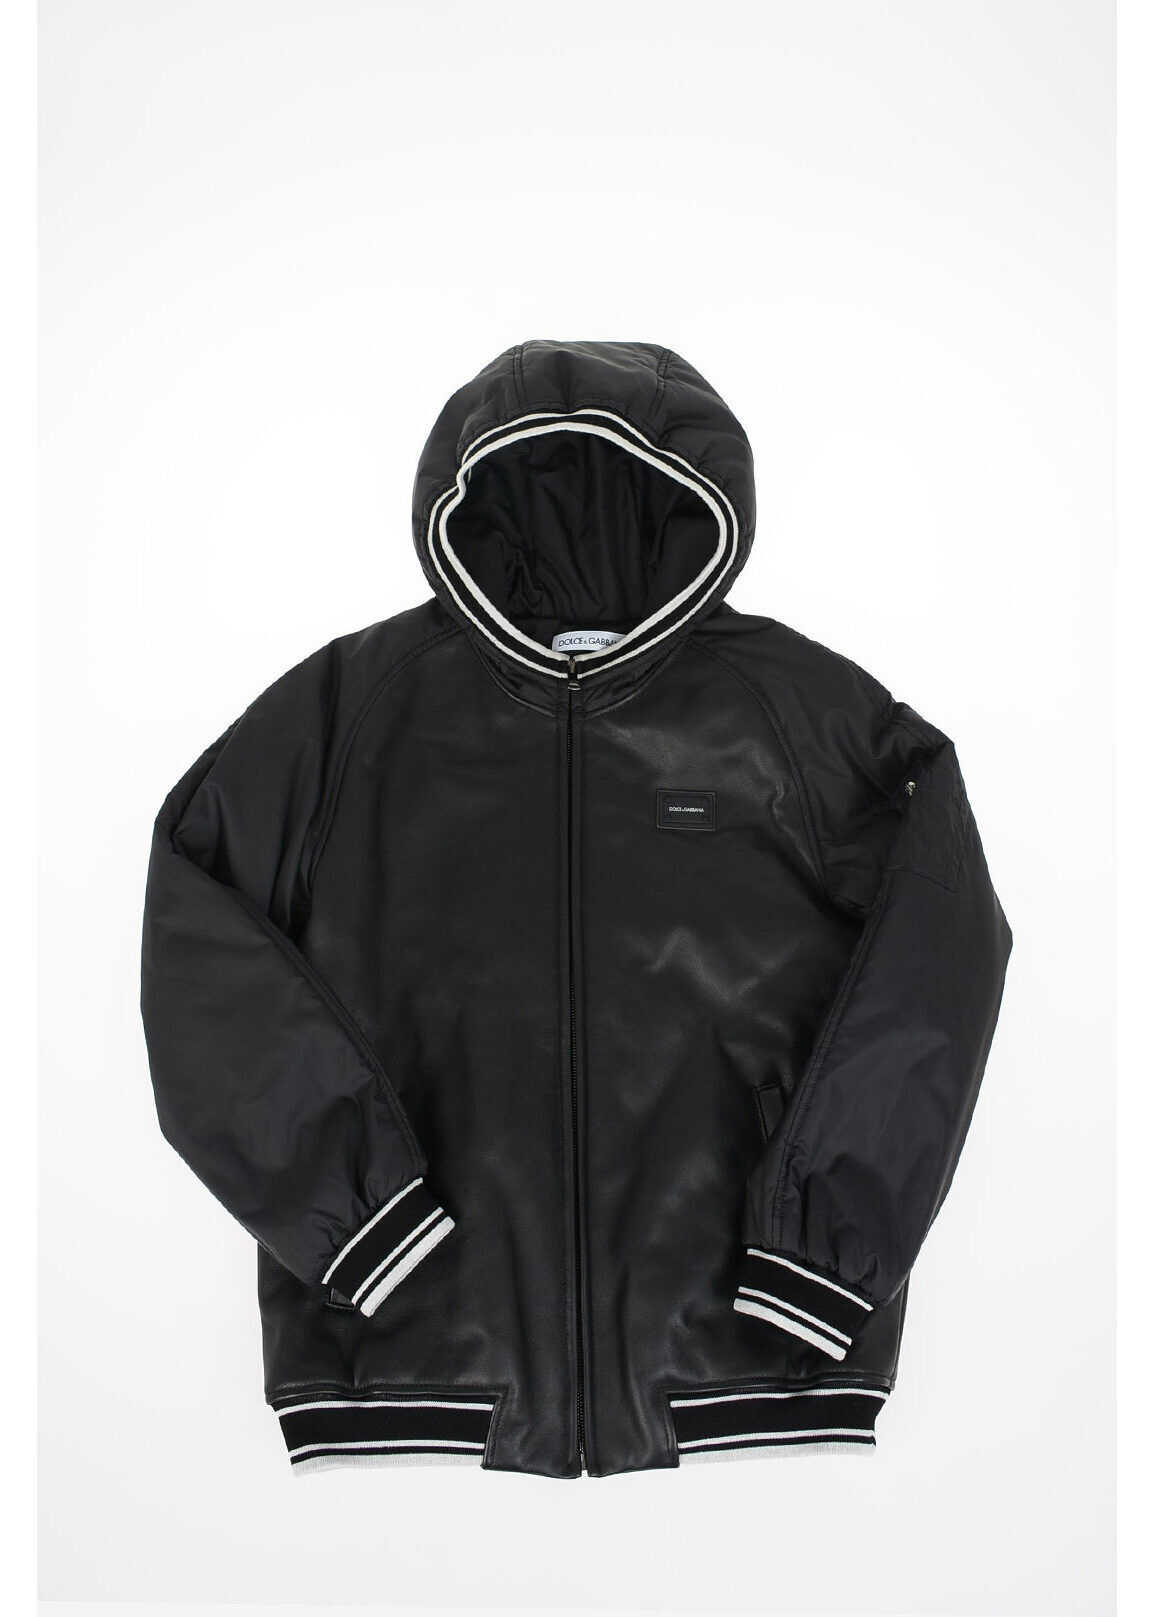 Dolce & Gabbana Kids leather applications hooded outerwear BLACK